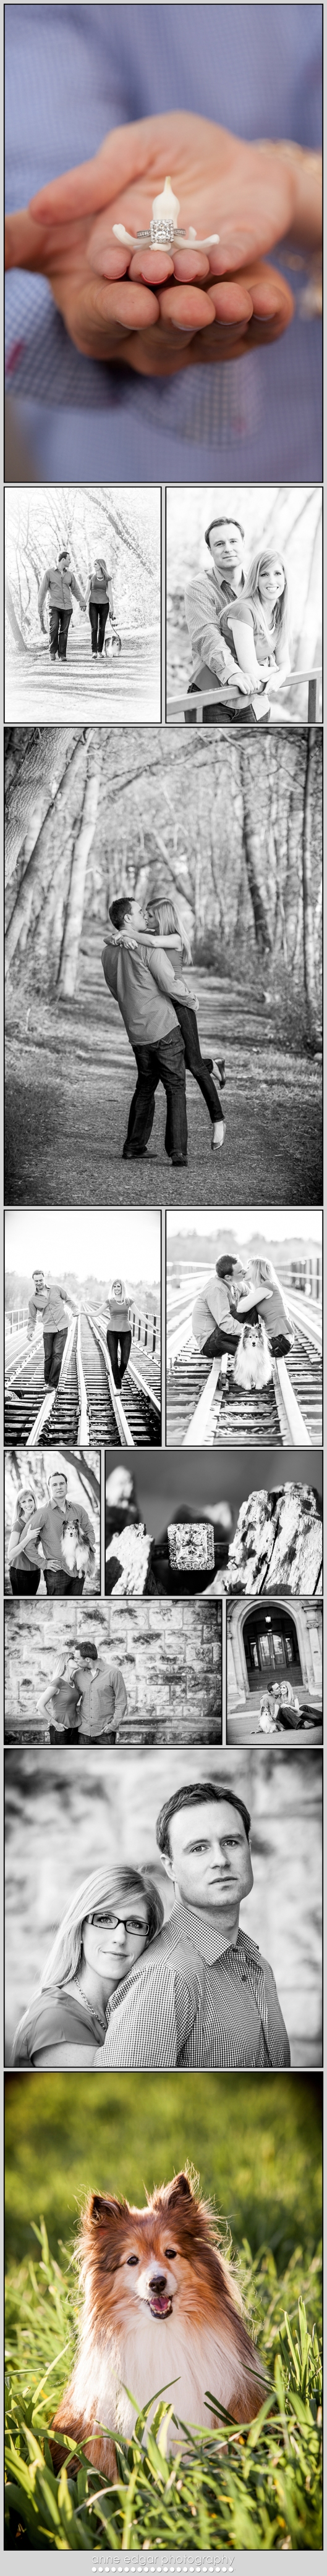 beautiful engagement photos on train tracks in spring sunshine